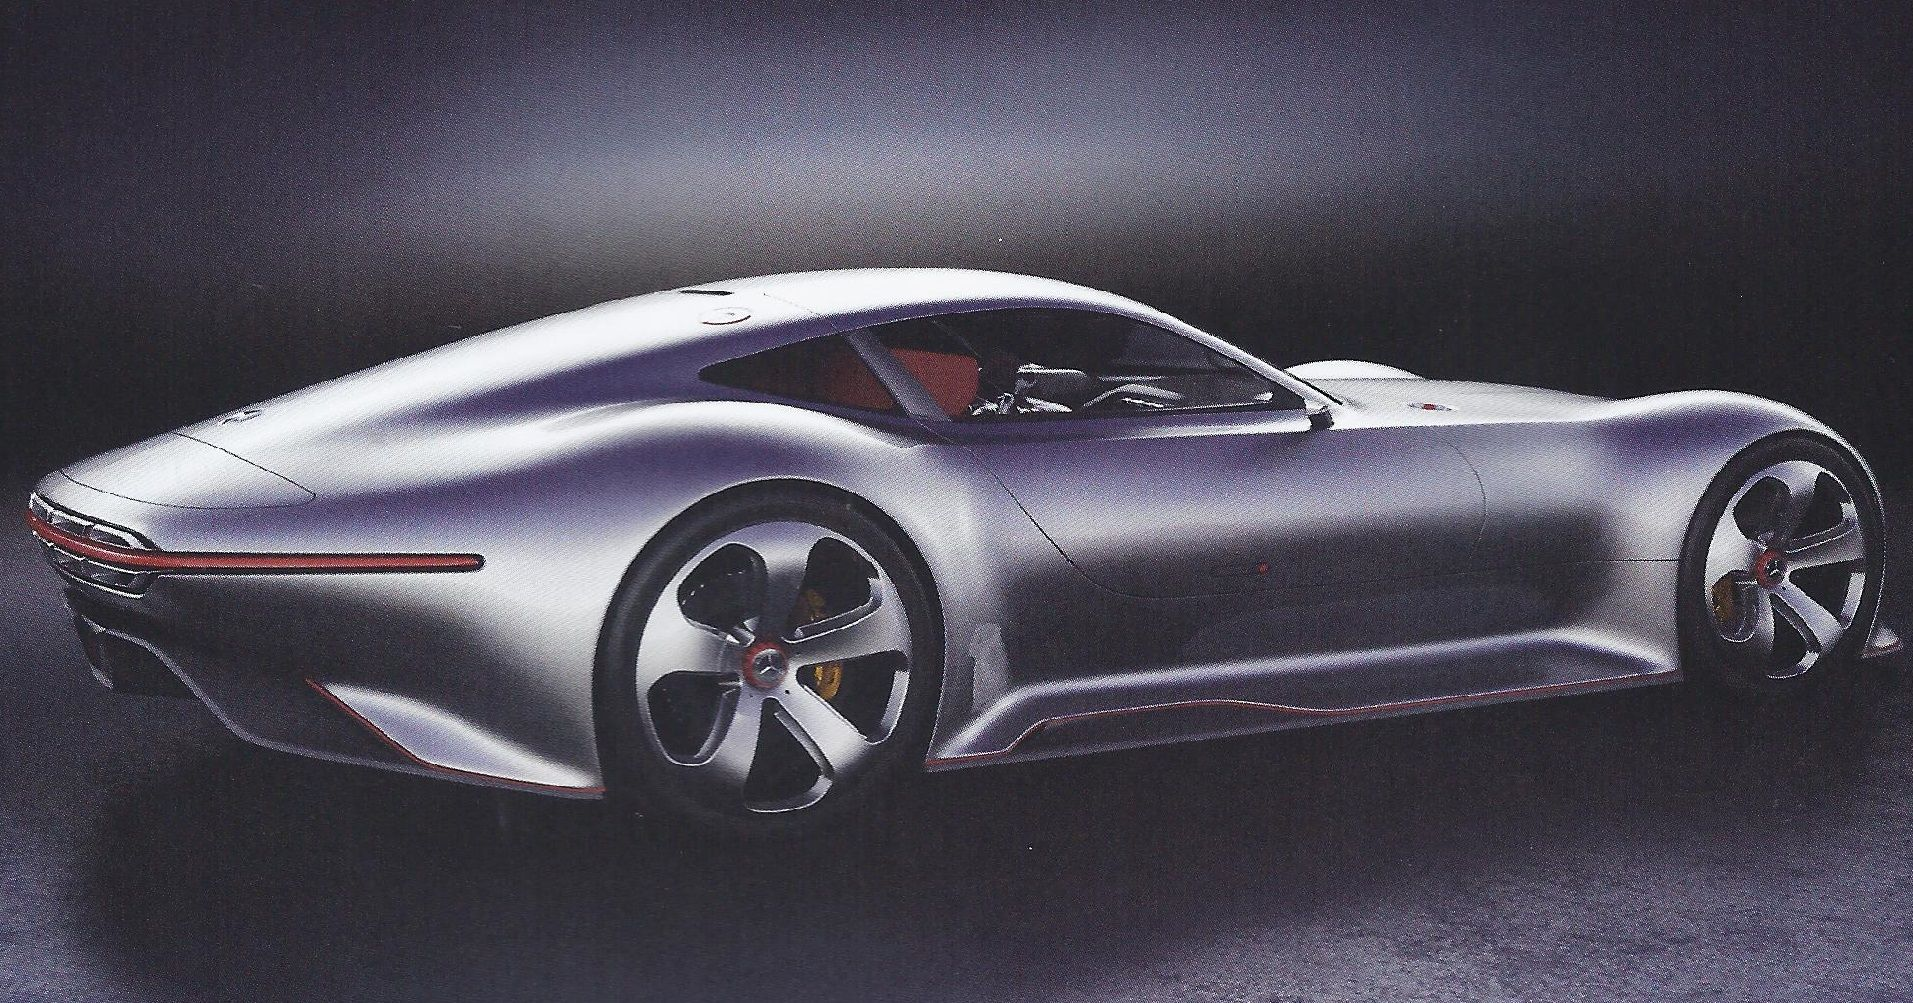 Mercedes Benz Releases Vision GT Project Teaser Video 1913x1003